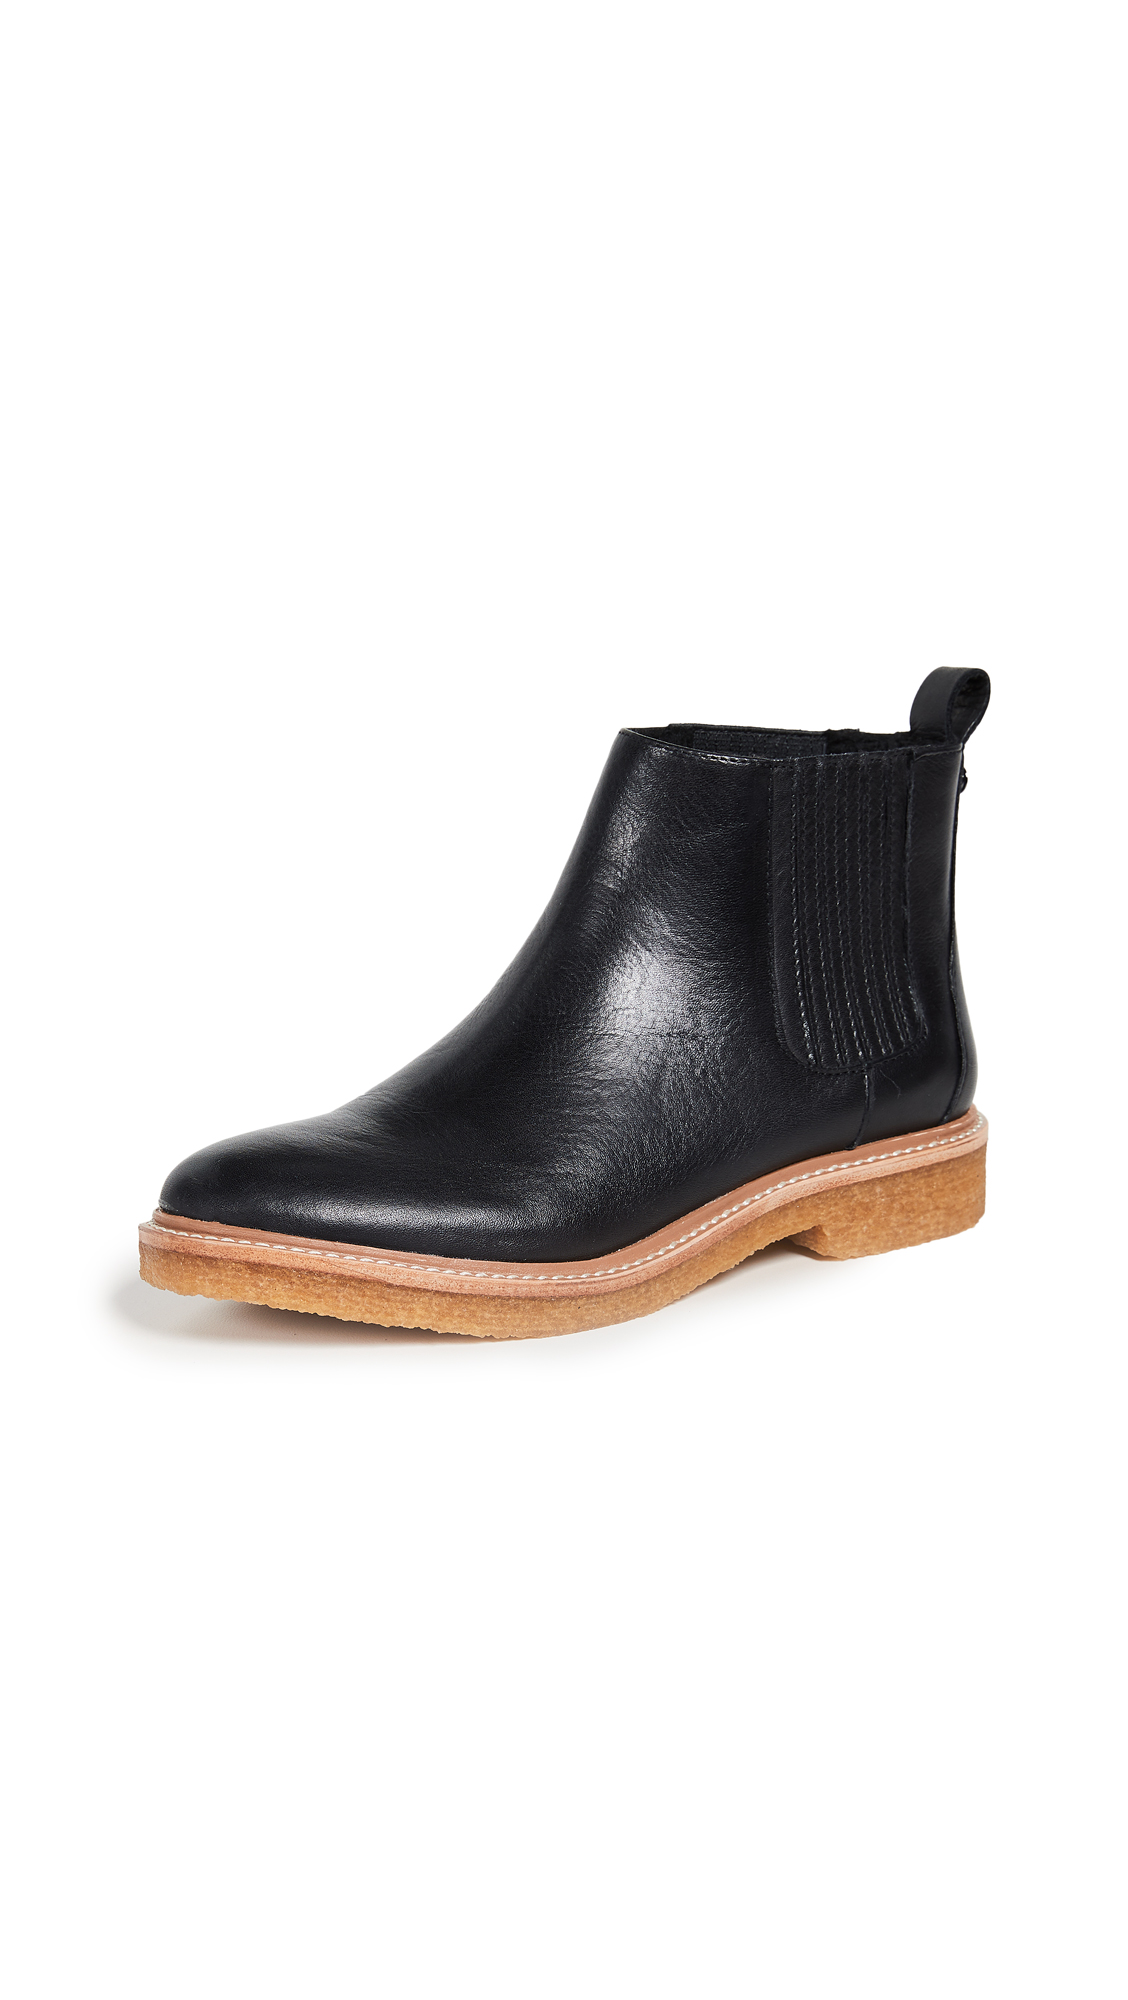 Botkier Chelsea Boots - Black